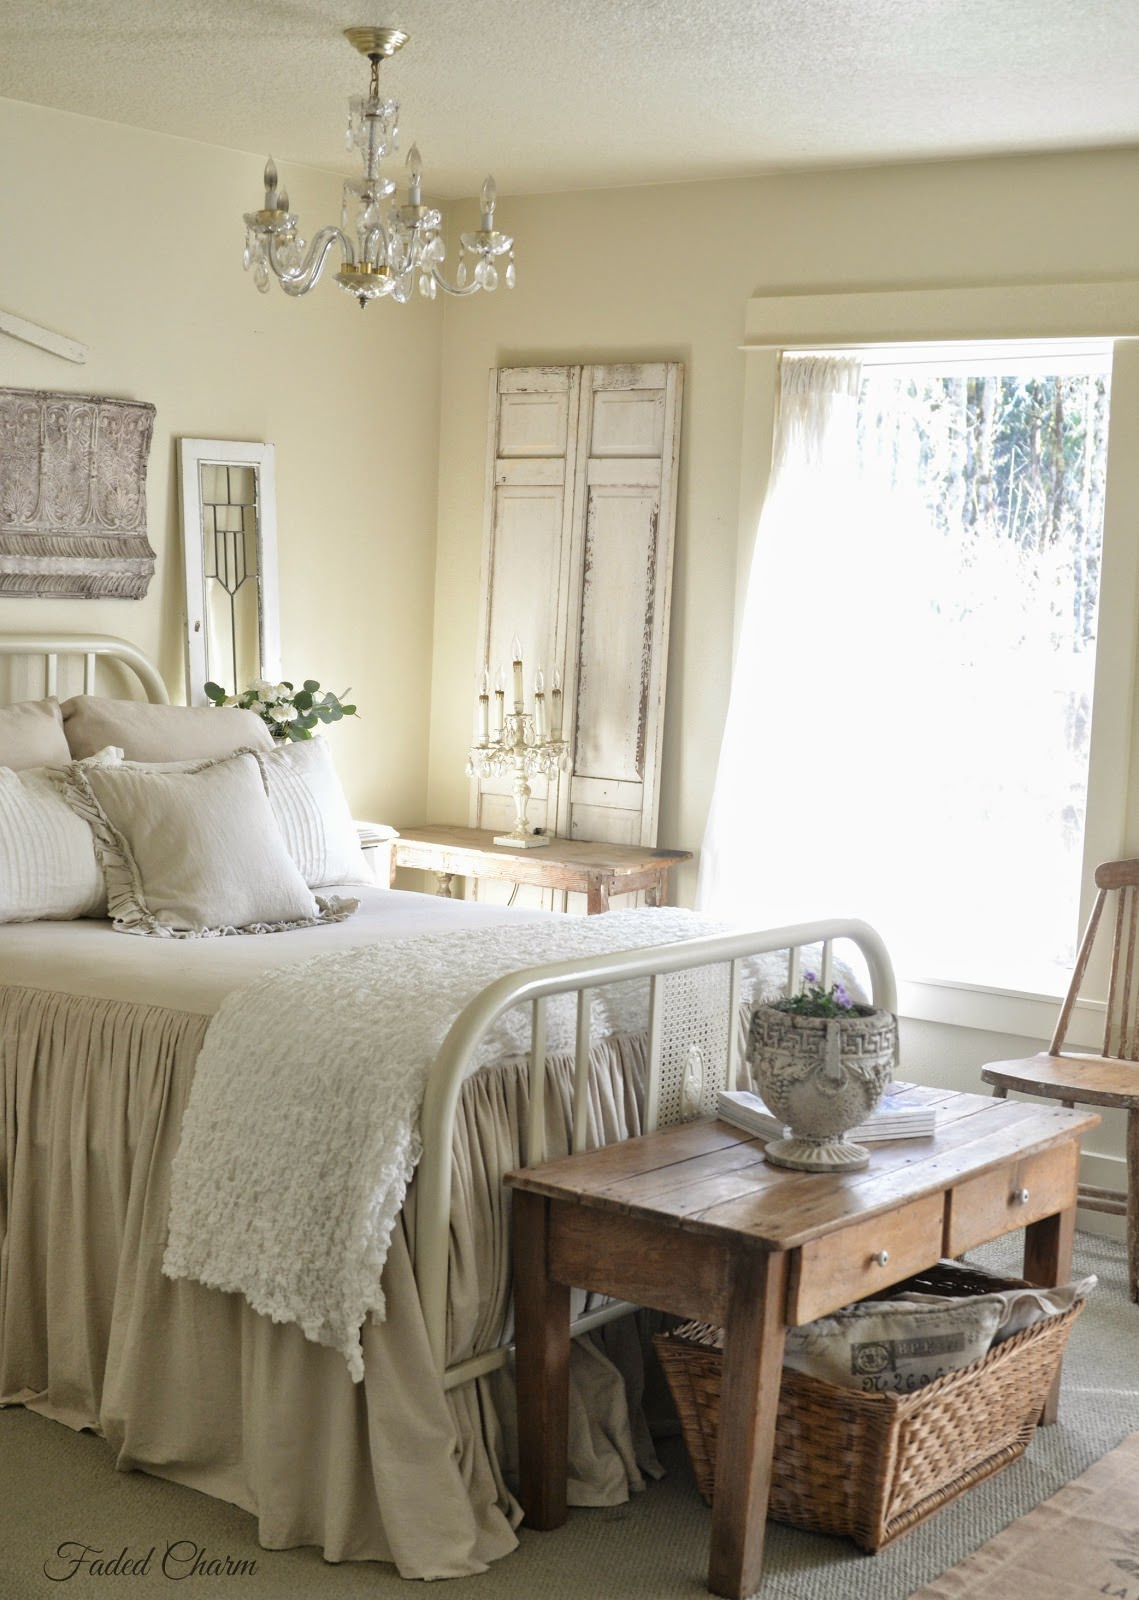 20 beautiful guest bedroom ideas my mommy style for Country bedroom ideas